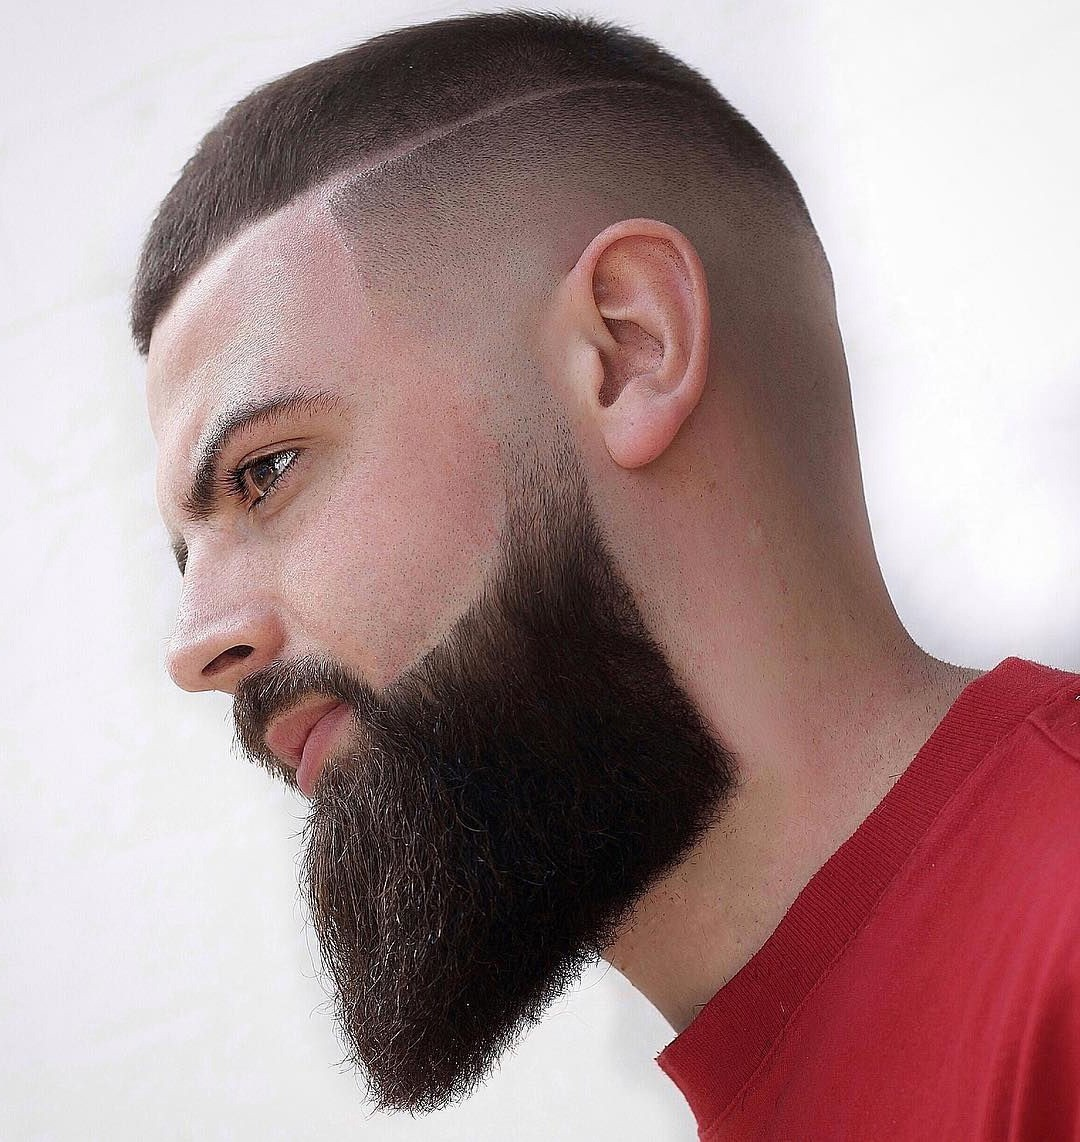 Disconnected Undercut Haircut with Skin Fade and Full Beard